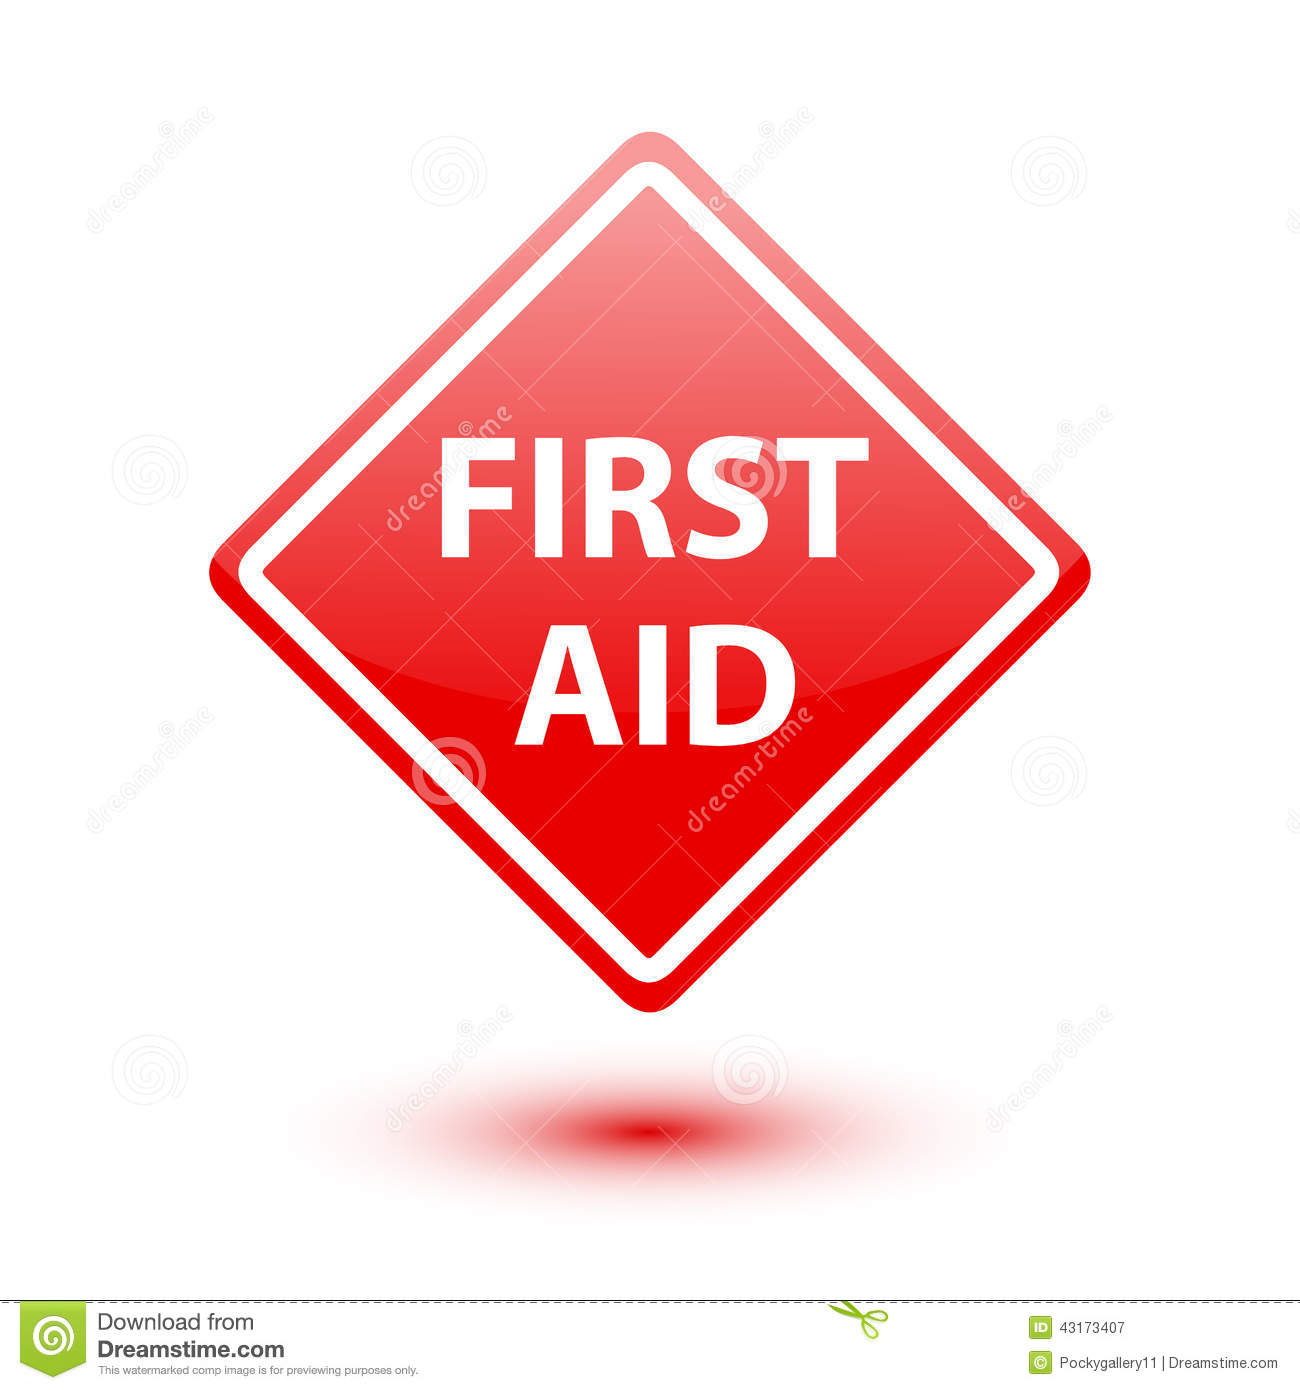 First aid red sign on white